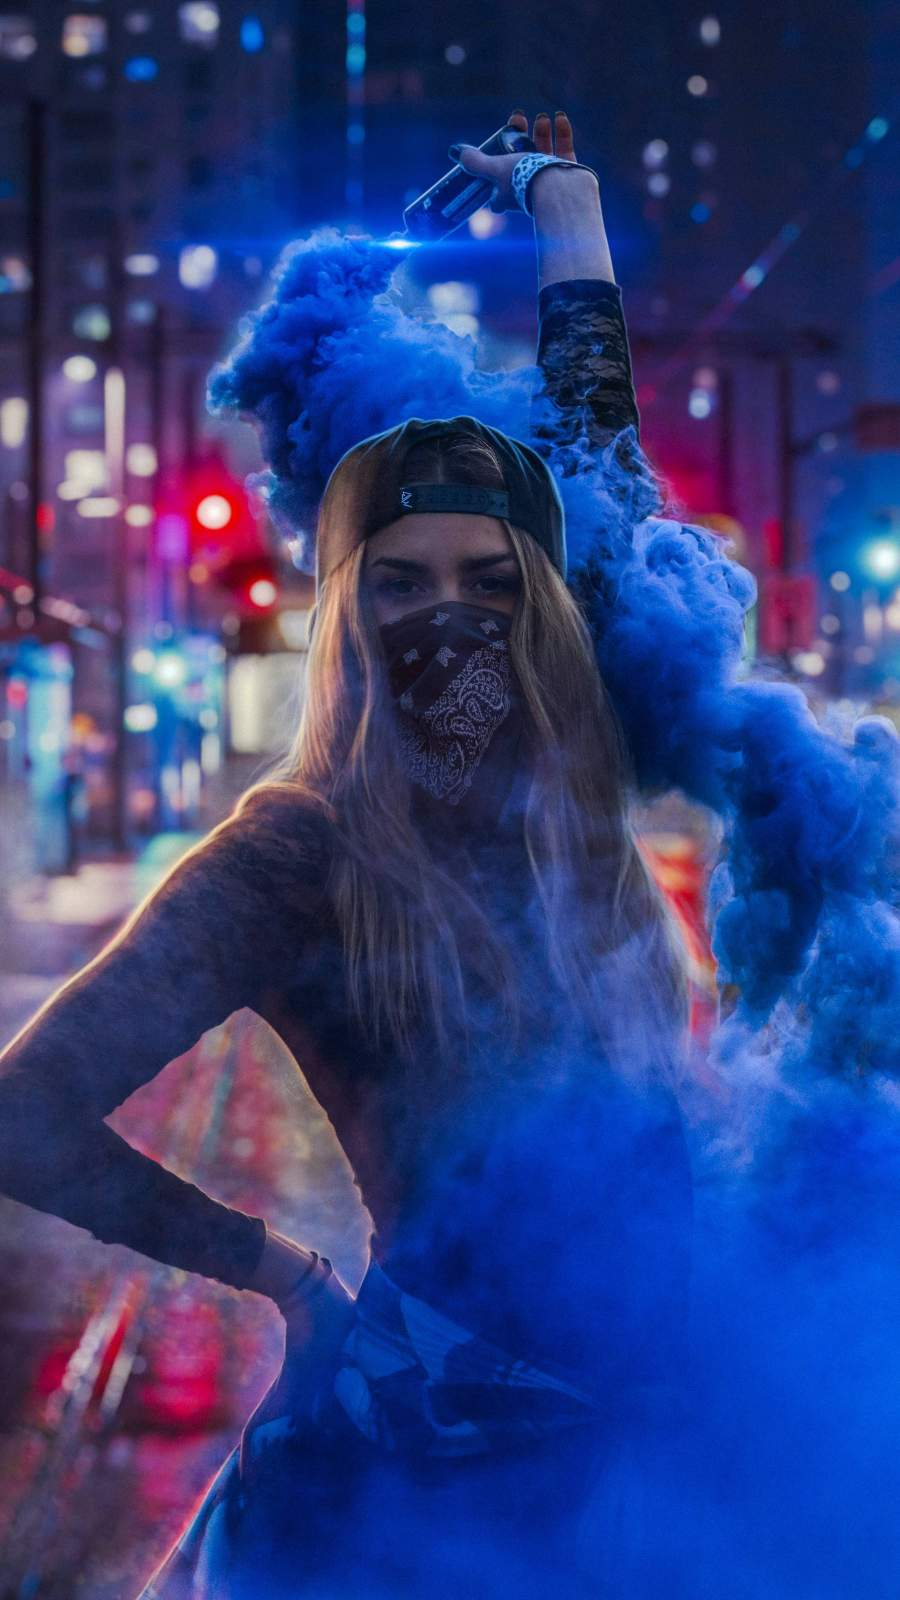 Blue Smoke Girl iPhone Wallpaper